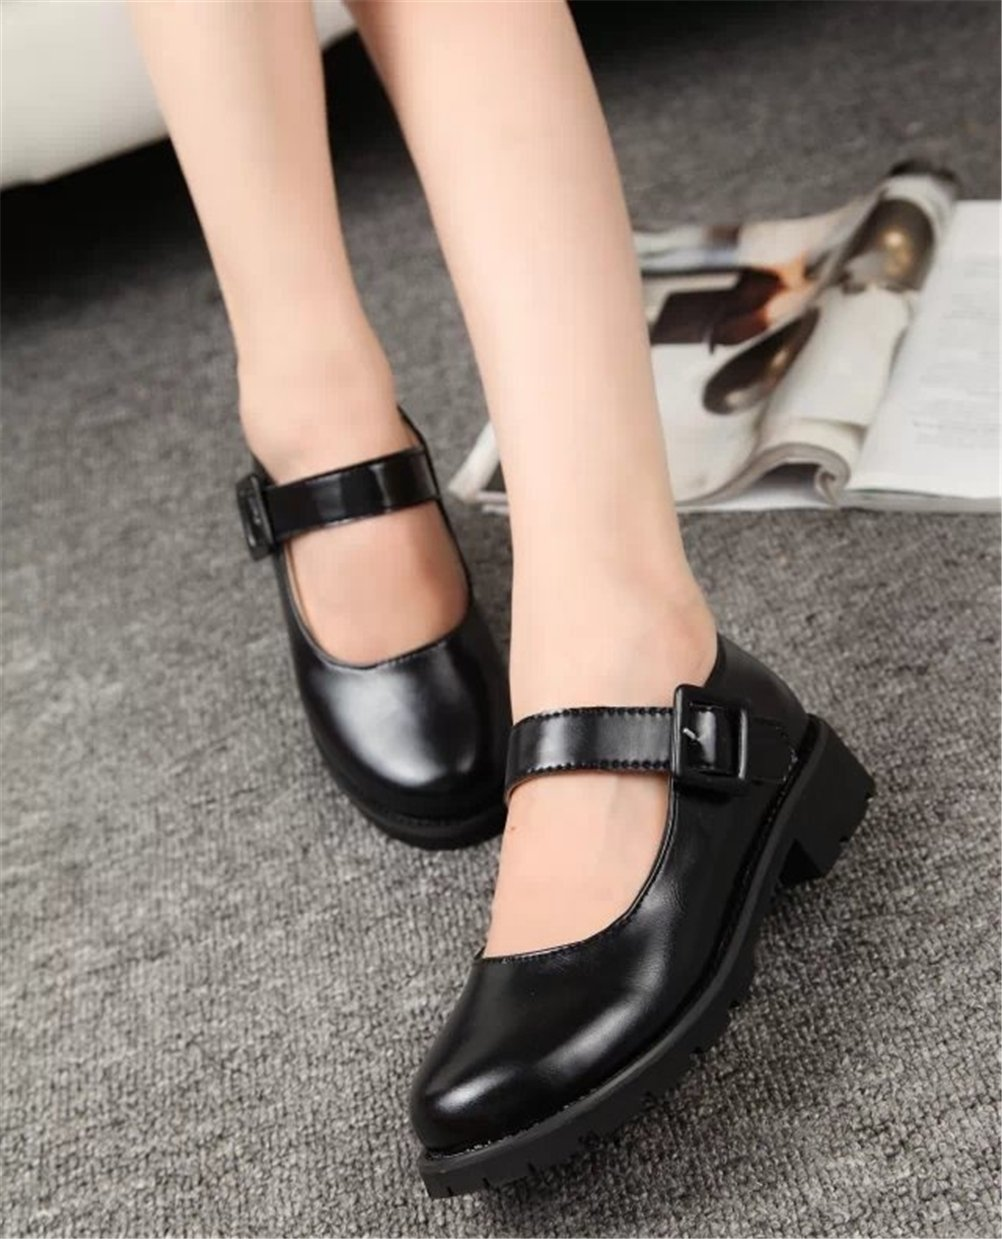 ACE SHOCK Women's Girl's Lolita Low Top Japanese Students Maid Uniform Dress Shoes (5.5, Black) by ACE SHOCK (Image #5)